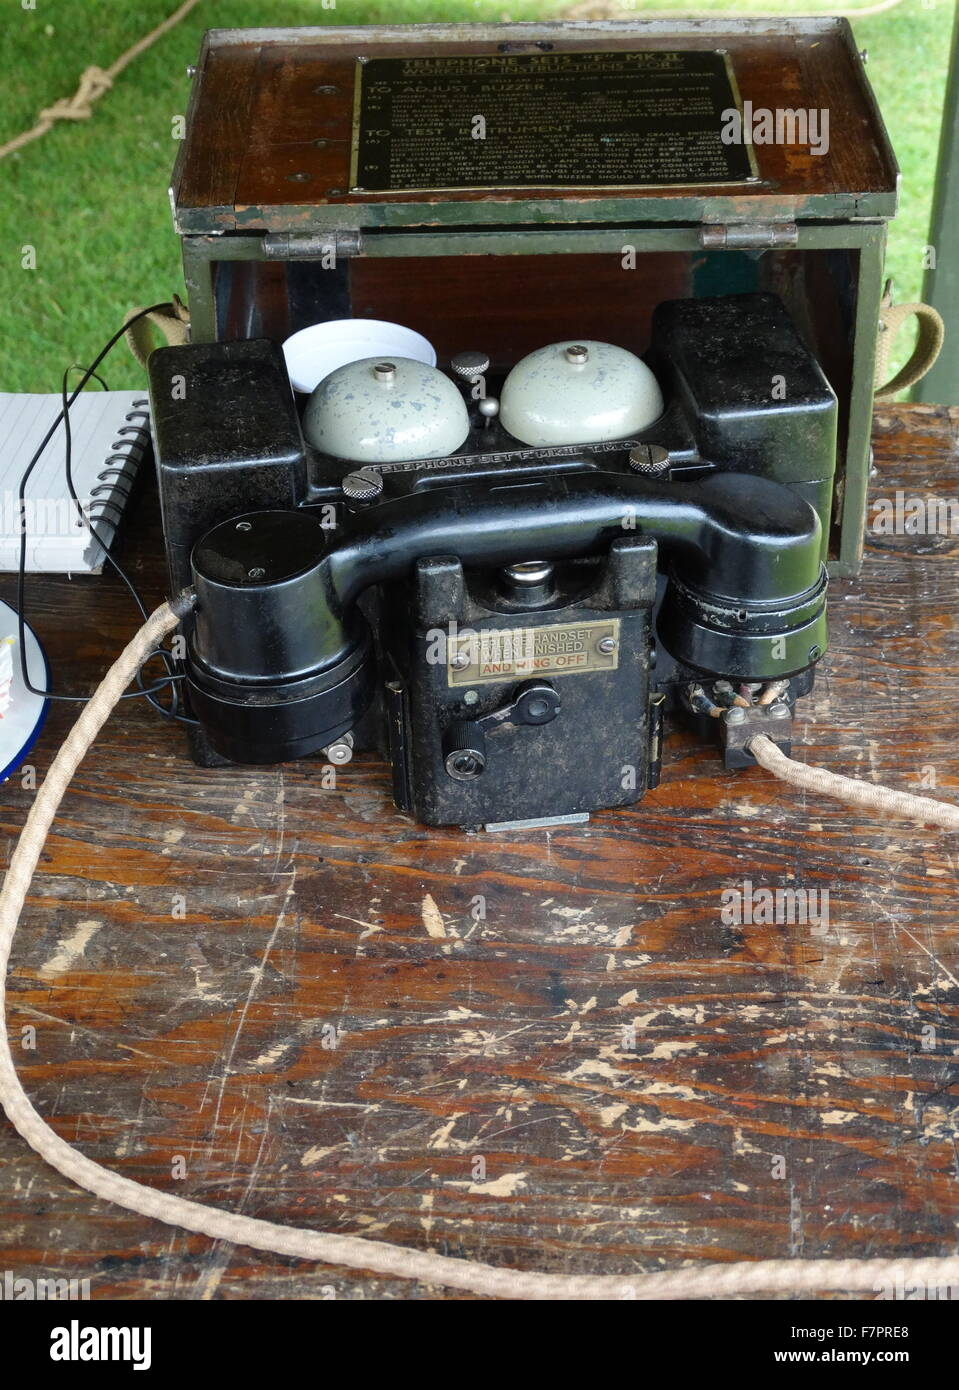 World war two 'F' MK II portable telephone sets for the British army - Stock Image